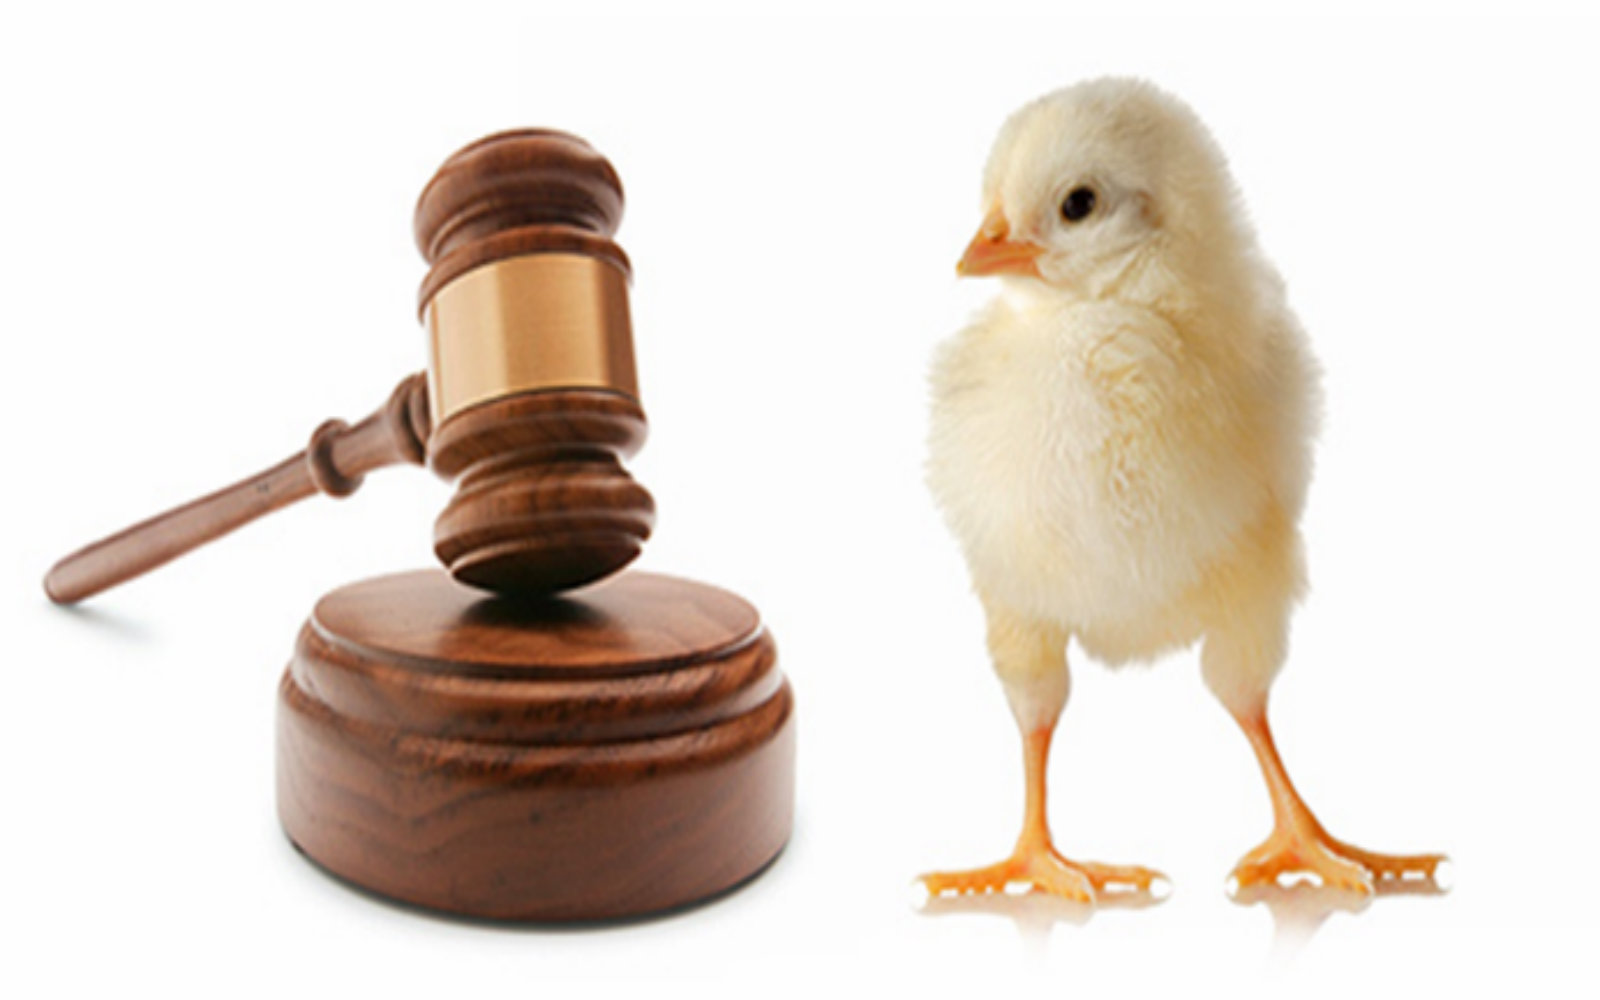 What Rights? Examples of Animal Cruelty That Are Perfectly Legal